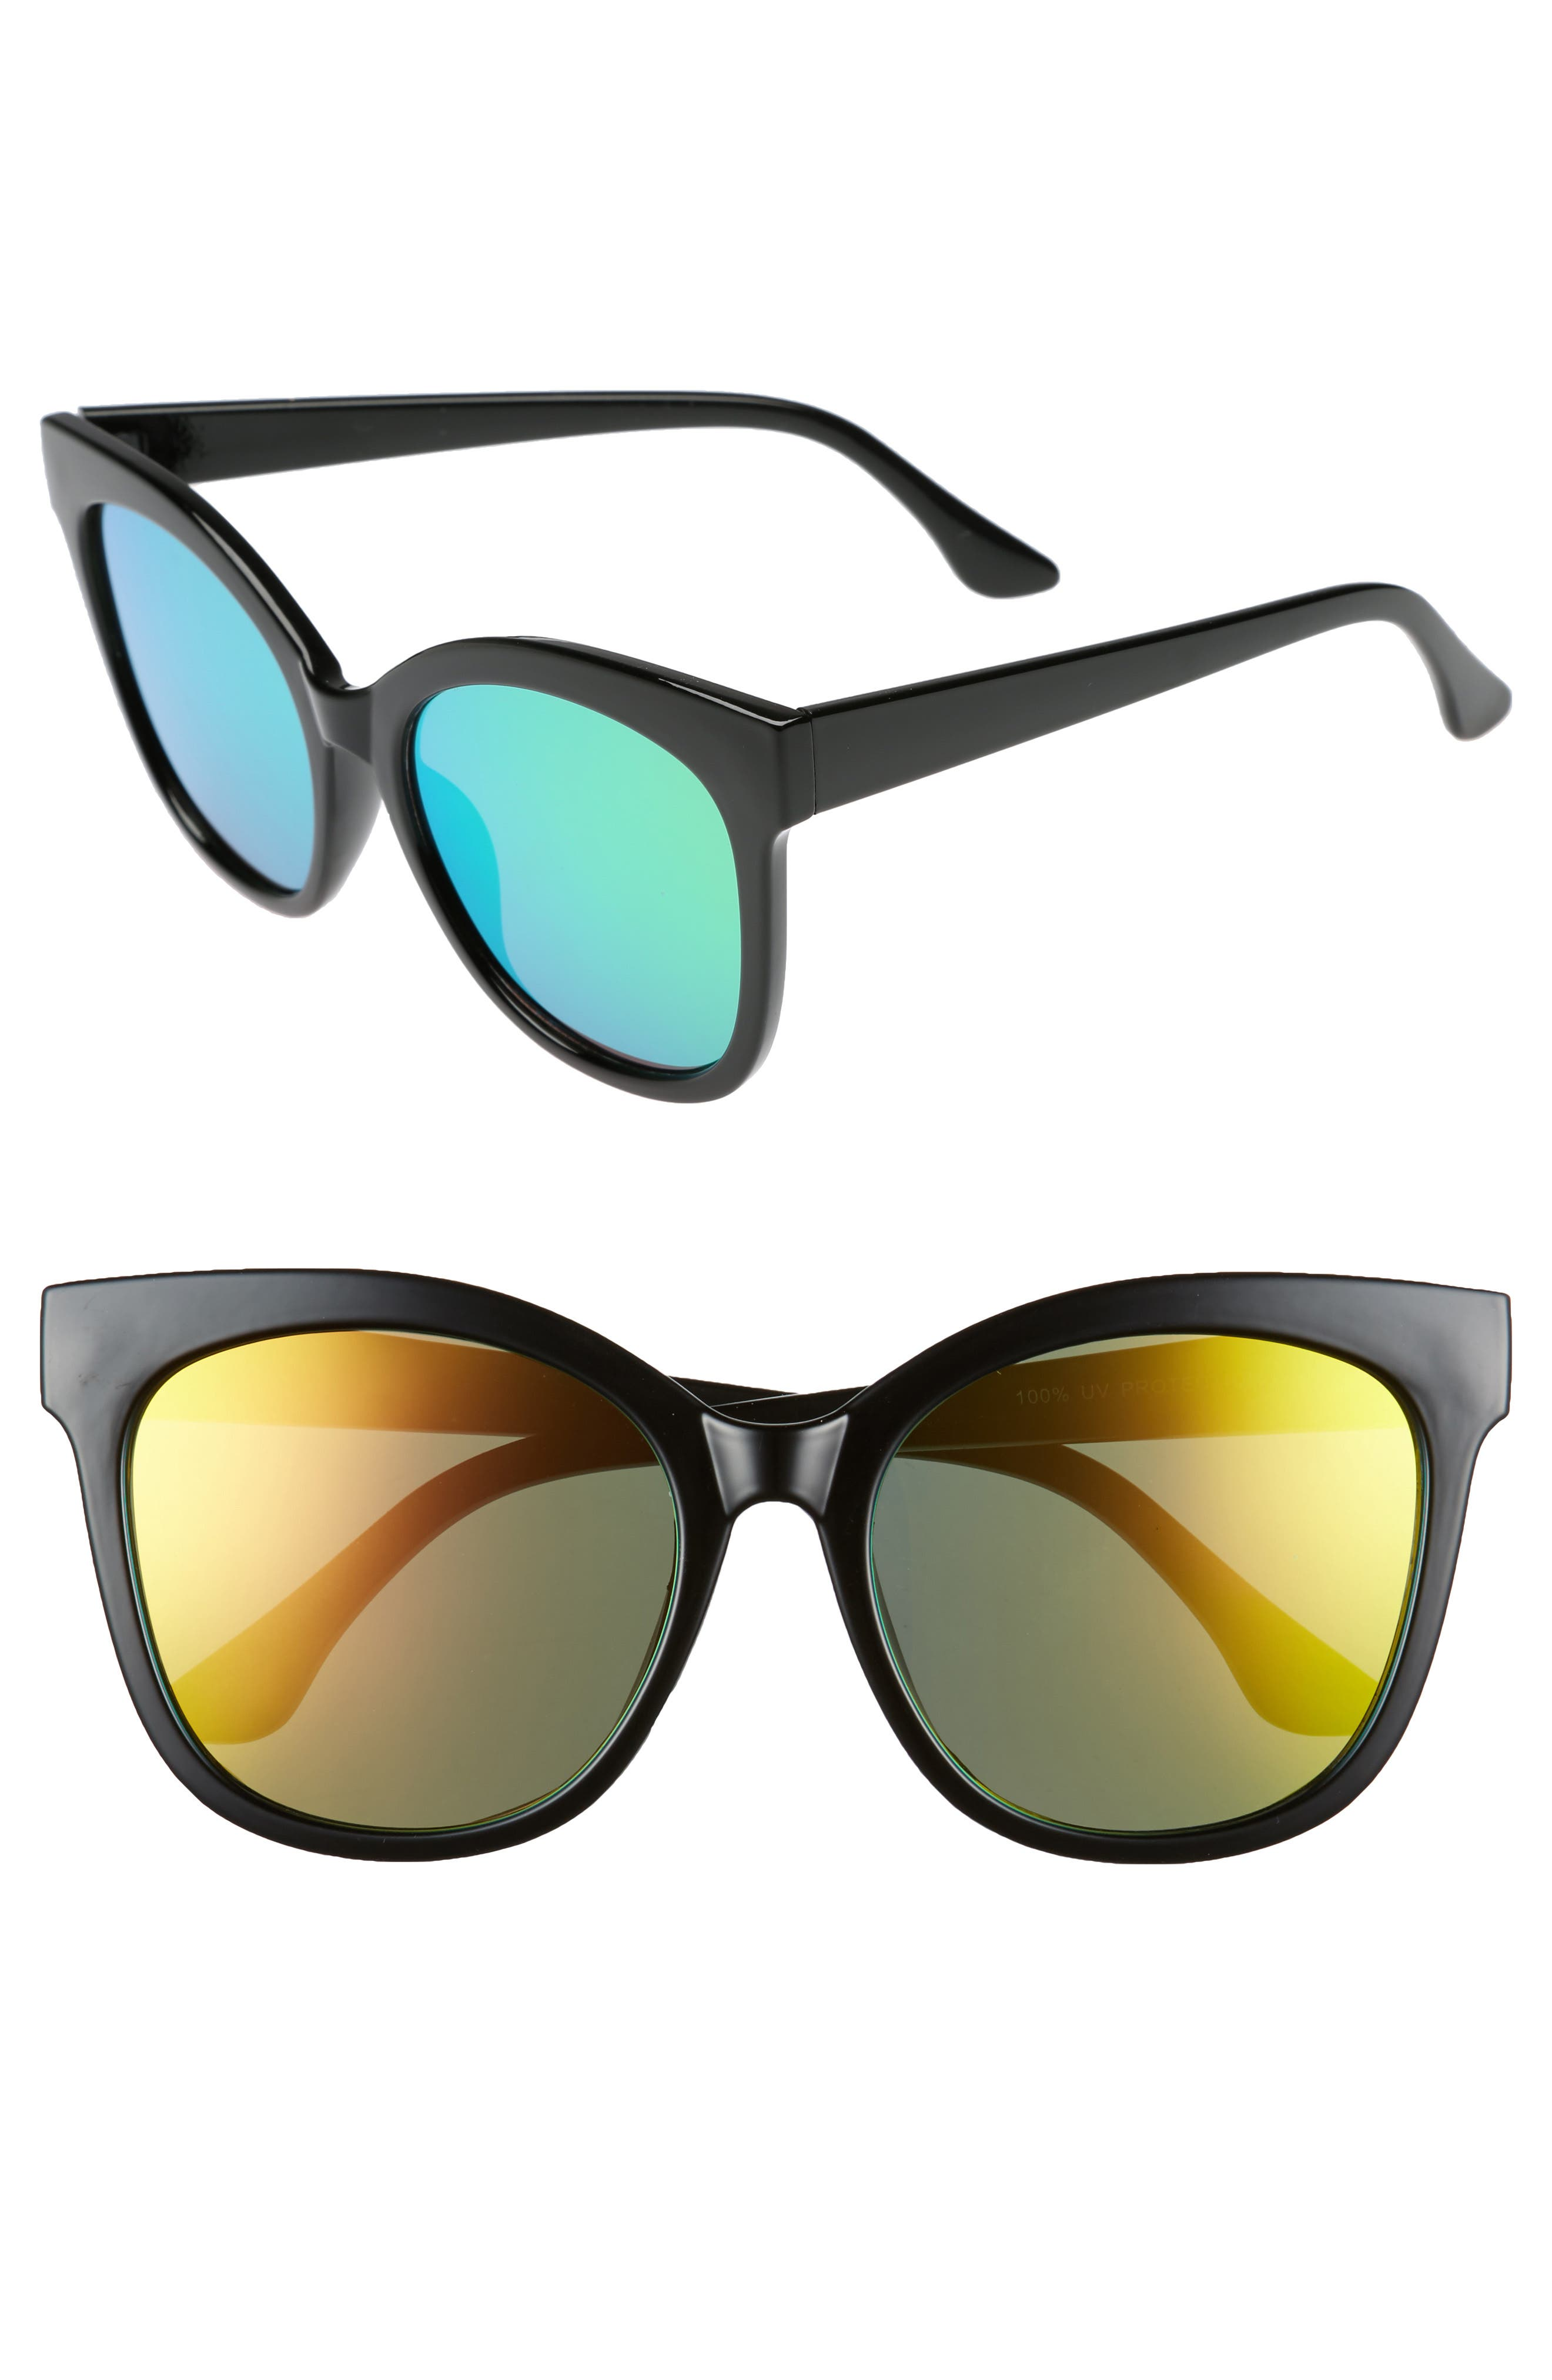 Main Image - BP. 55mm Square Sunglasses